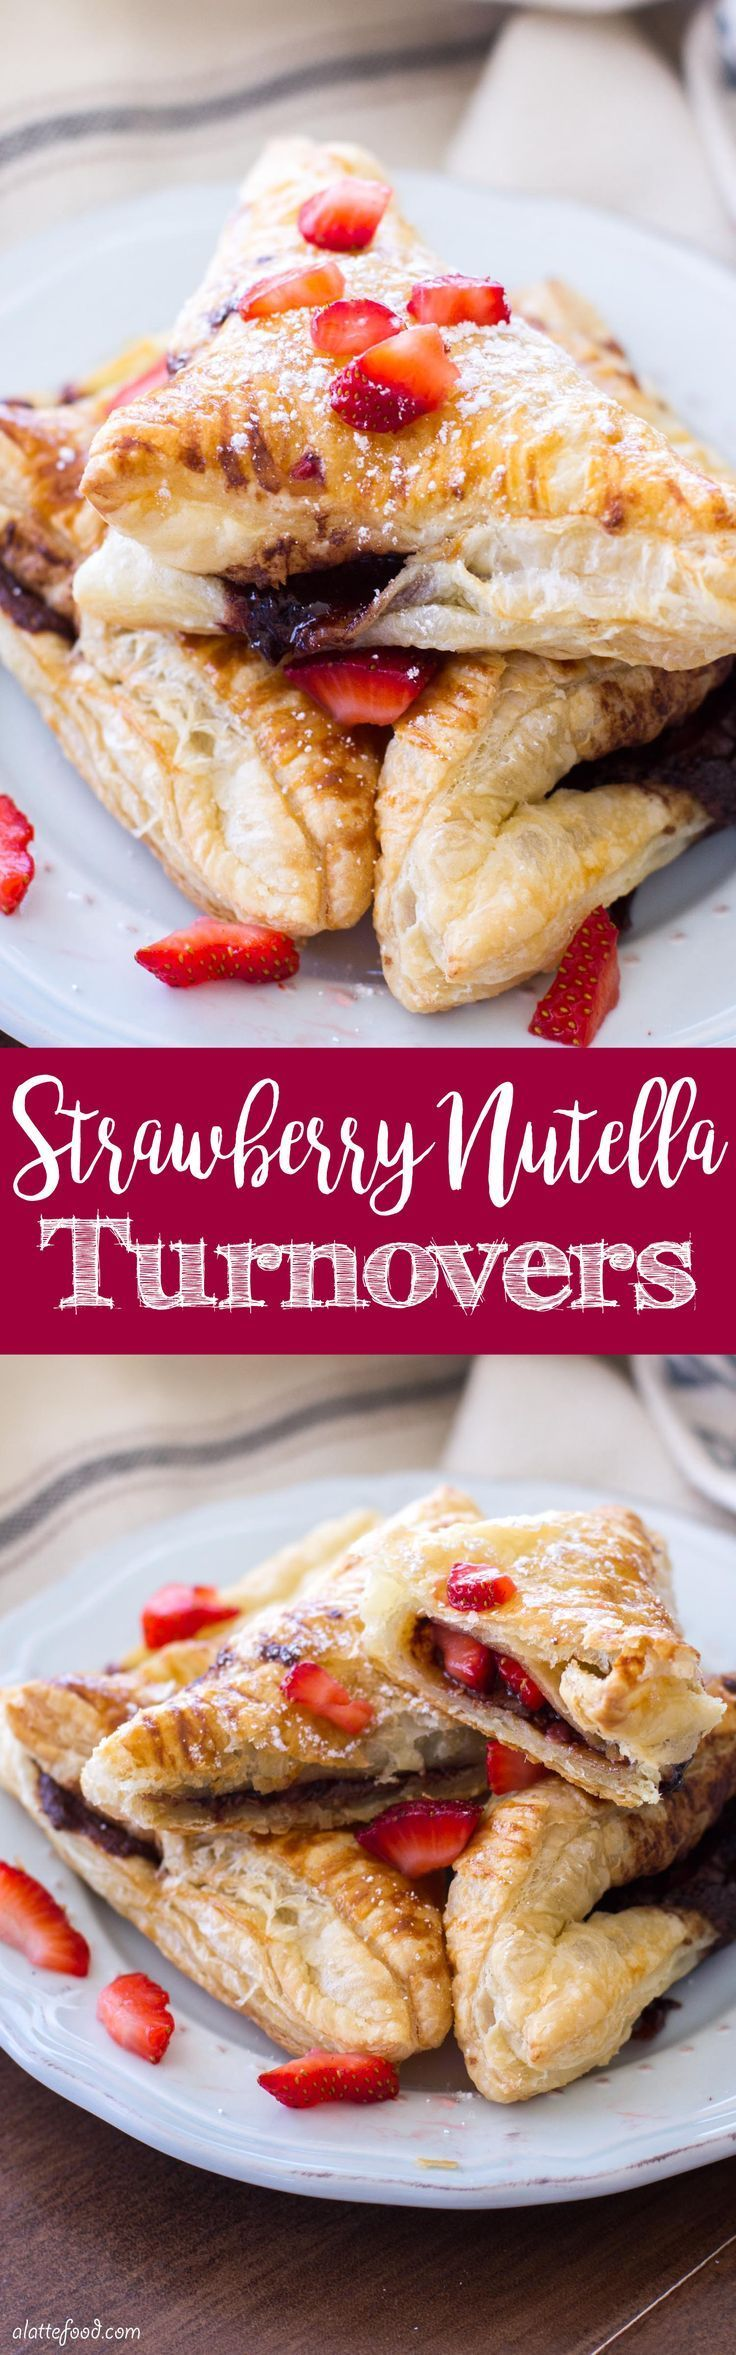 This easy chocolate turnover recipe is filled with strawberries and Nutella to make the perfect breakfast, brunch, or dessert! These Strawberry Nutella Turnovers are simple, delish, and chocolatey. What more could you want?